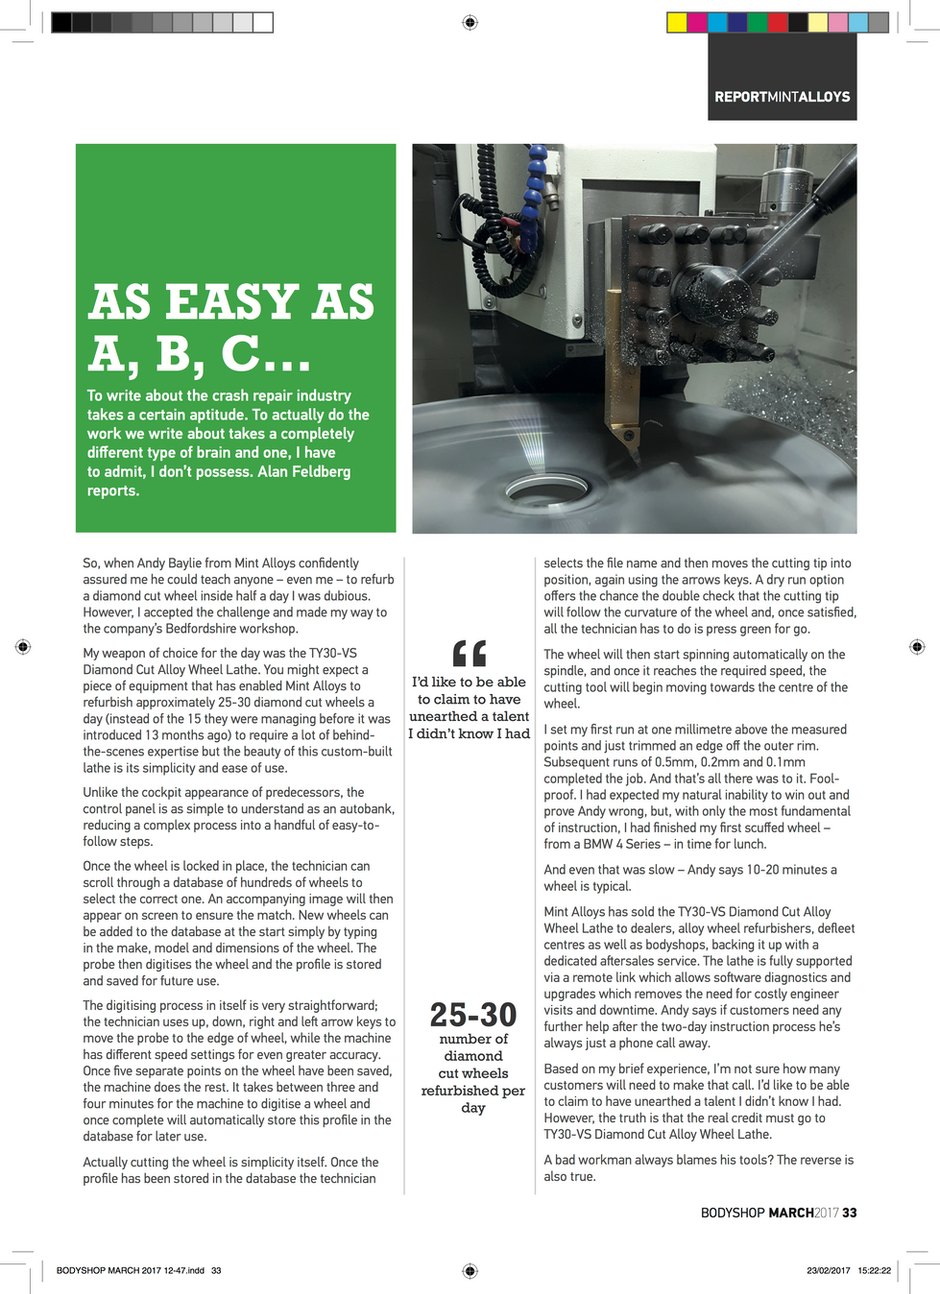 Article from BODYSHOP Magazine March 2017